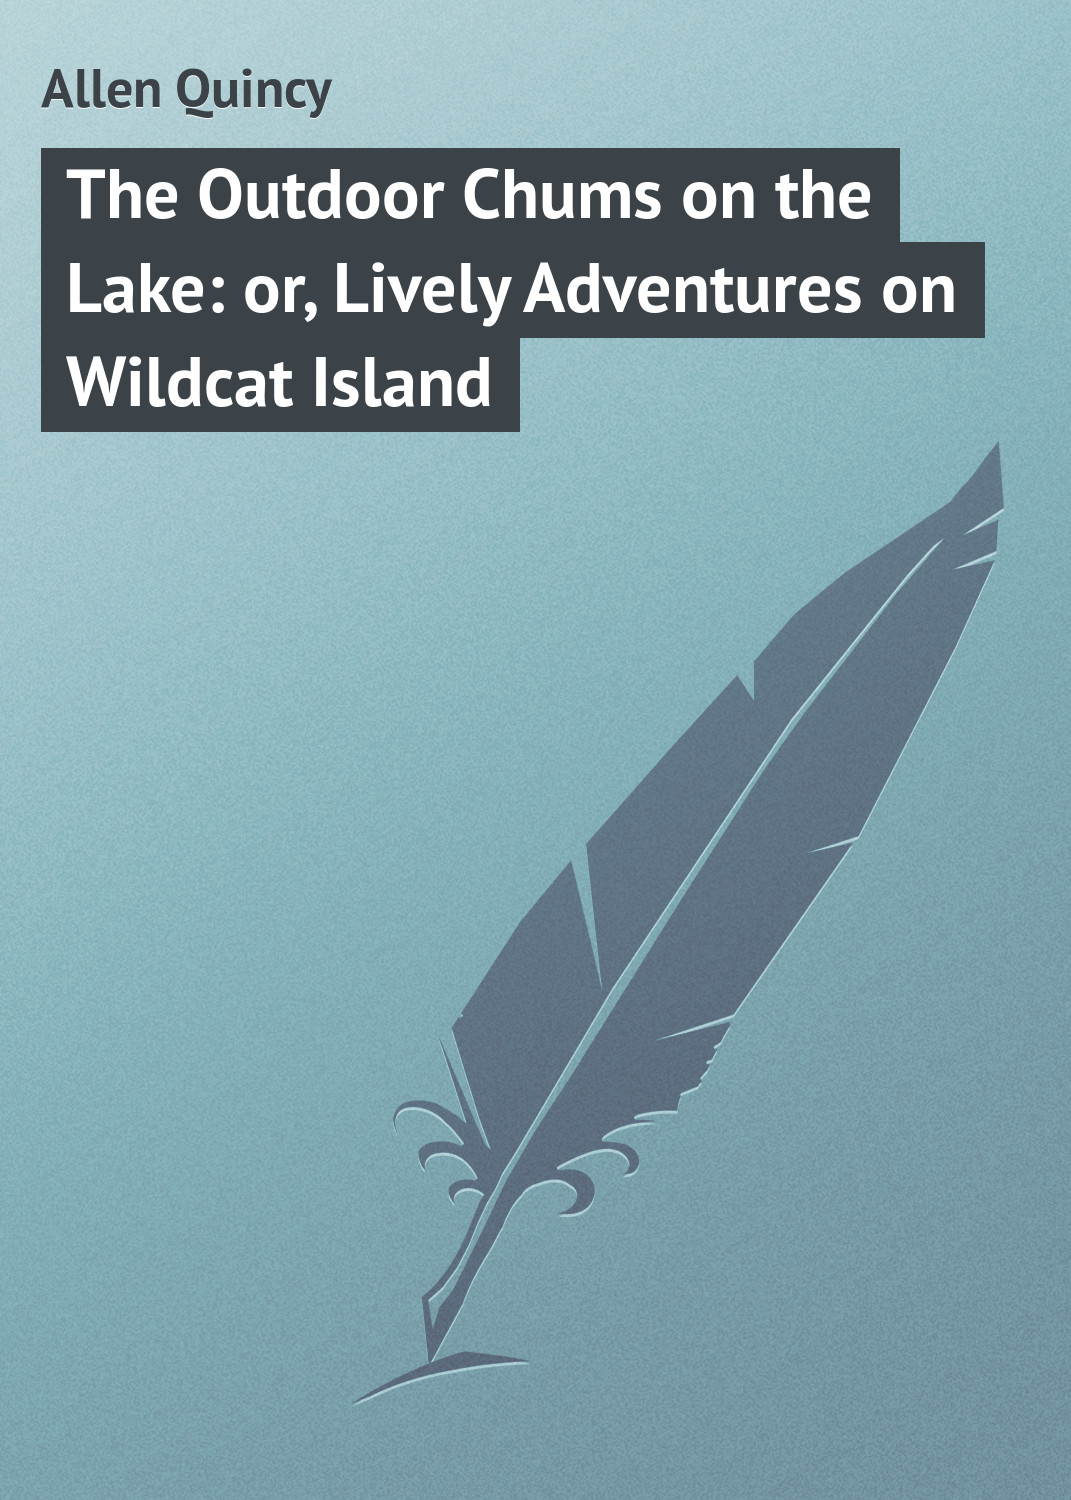 купить Allen Quincy The Outdoor Chums on the Lake: or, Lively Adventures on Wildcat Island по цене 0 рублей